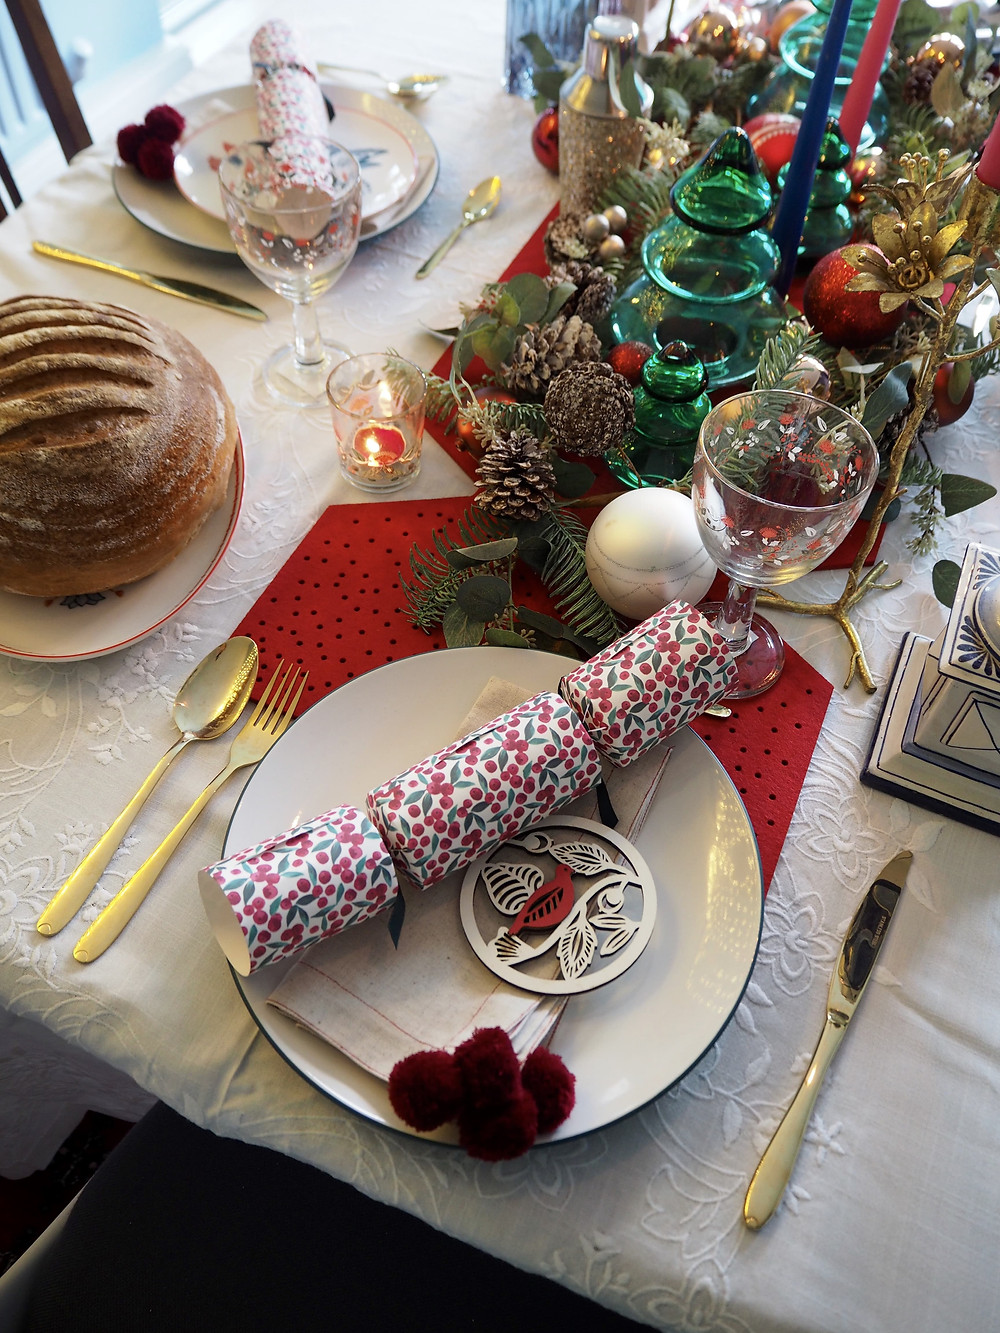 How to set your Christmas table with John Lewis Christmas crackers in pink and green with blue background and fairy lights, felt cracker centrepiece from the Folklore collection. Gold cutlery table setting. white vintage tablecloth